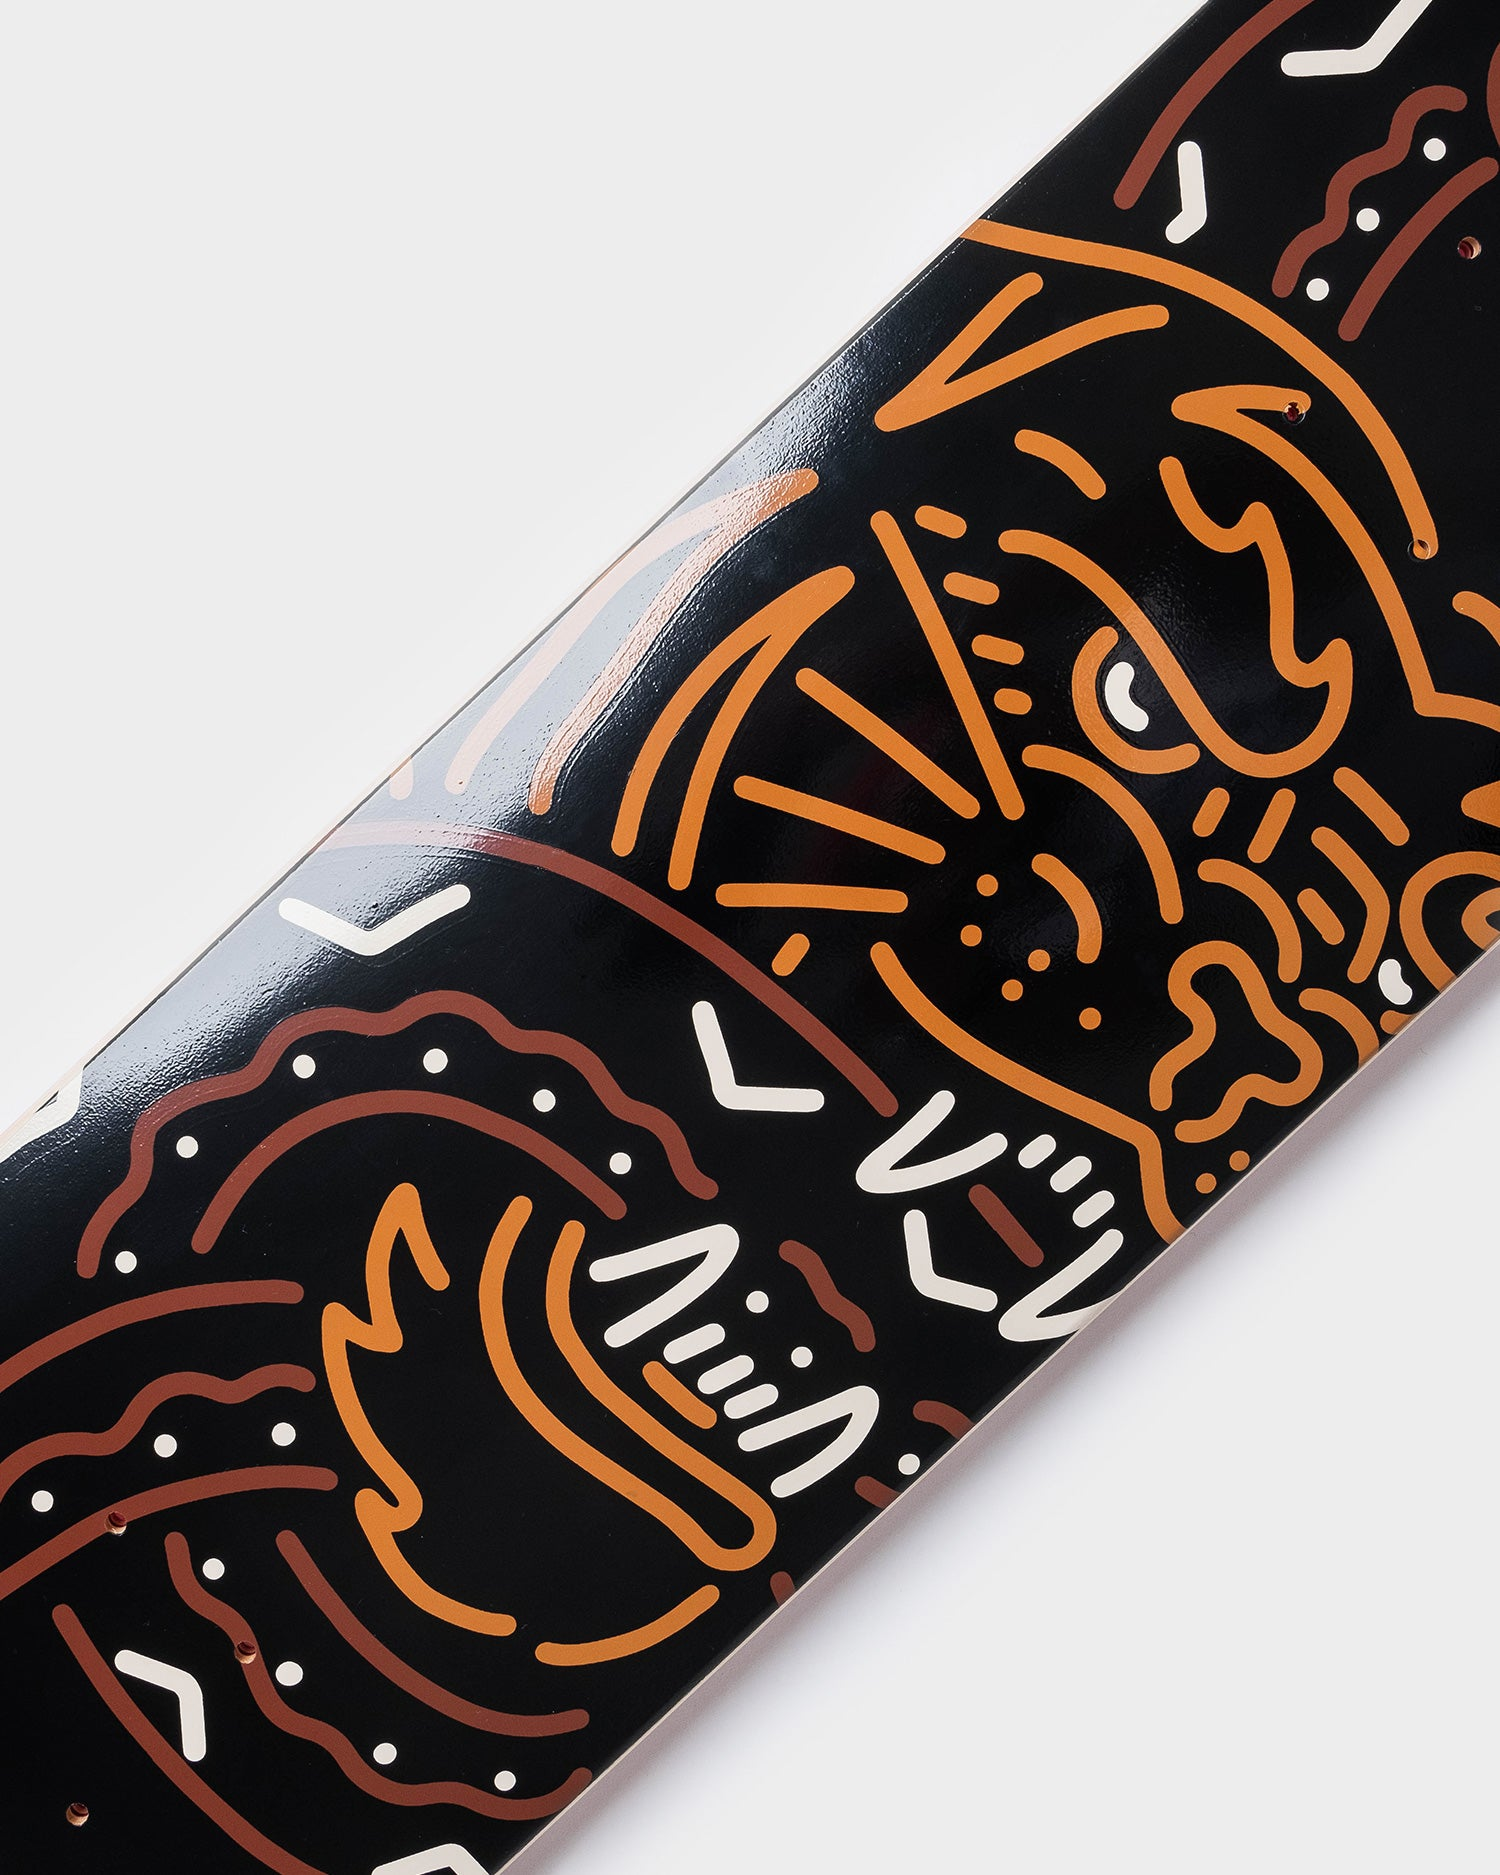 COOL DESIGN SKATEBOARD DECKS